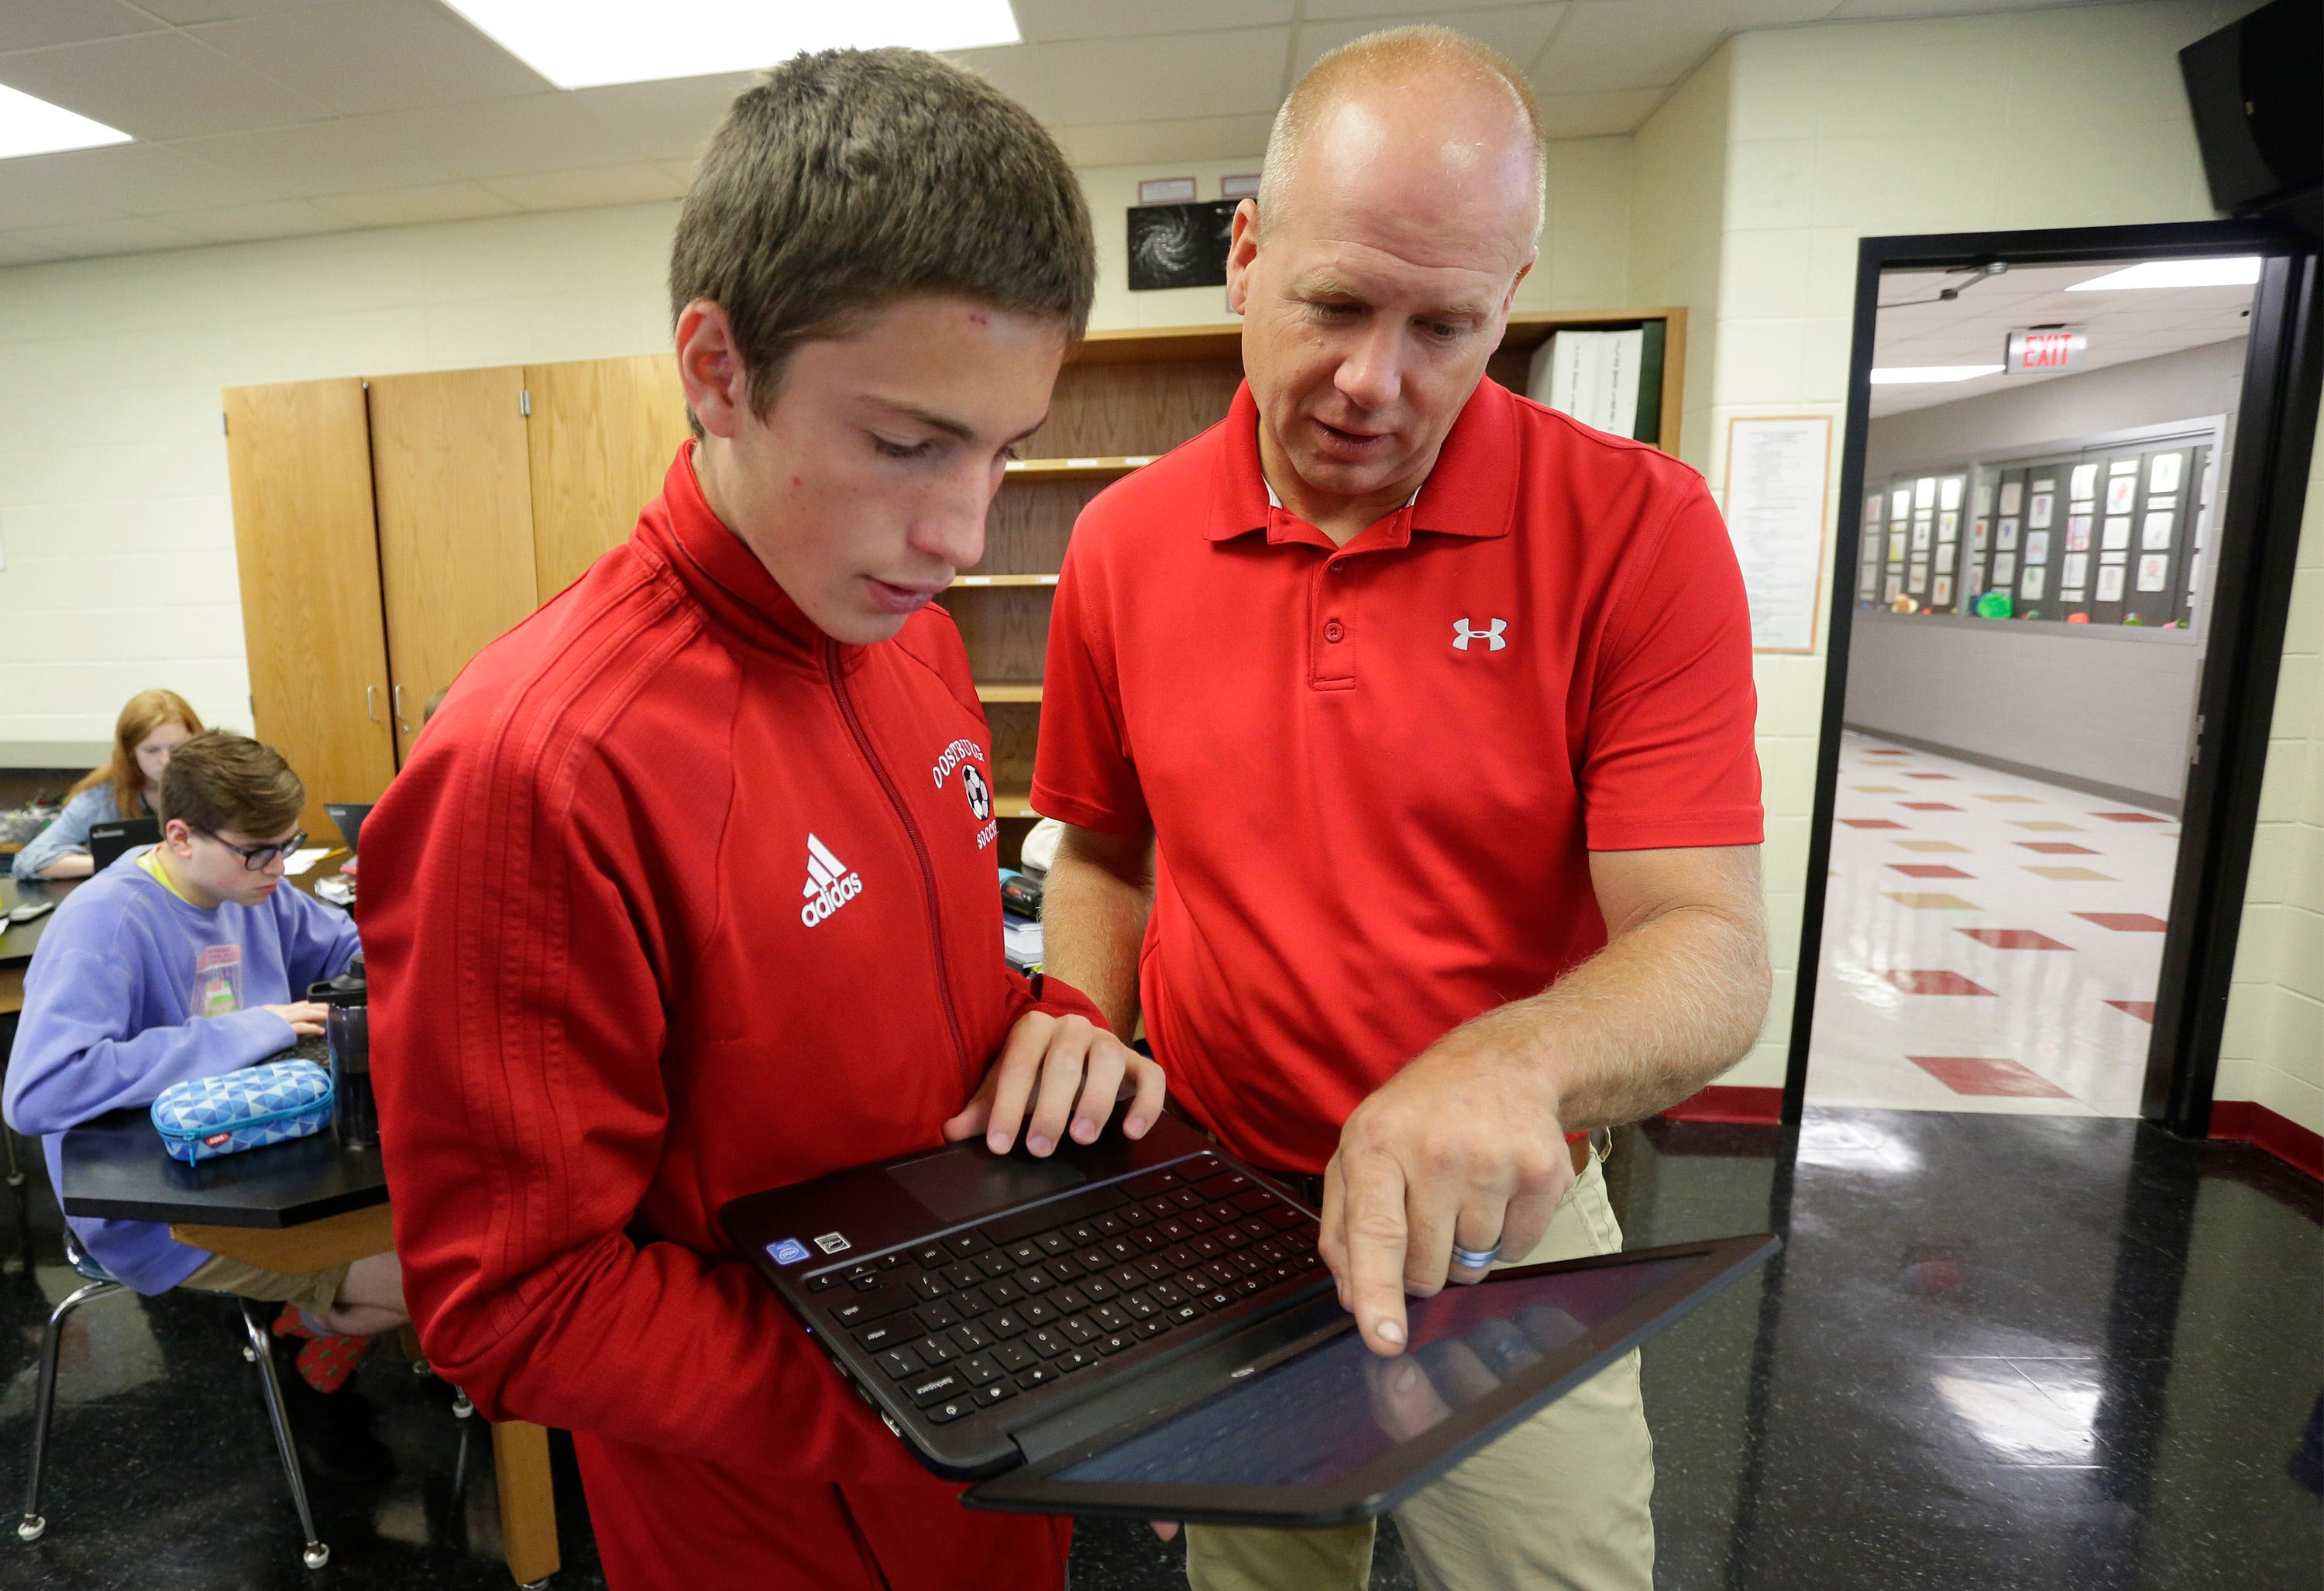 Oostburg High School junior Kyle Schinner listens as physics teacher Terry Hendrikse explains a spreadsheet used for an experiment, Wednesday, Sept. 25, 2019, in Oostburg. Part of the district's turnaround efforts included incorporating hands-on, experiment-based learning earlier on in school.